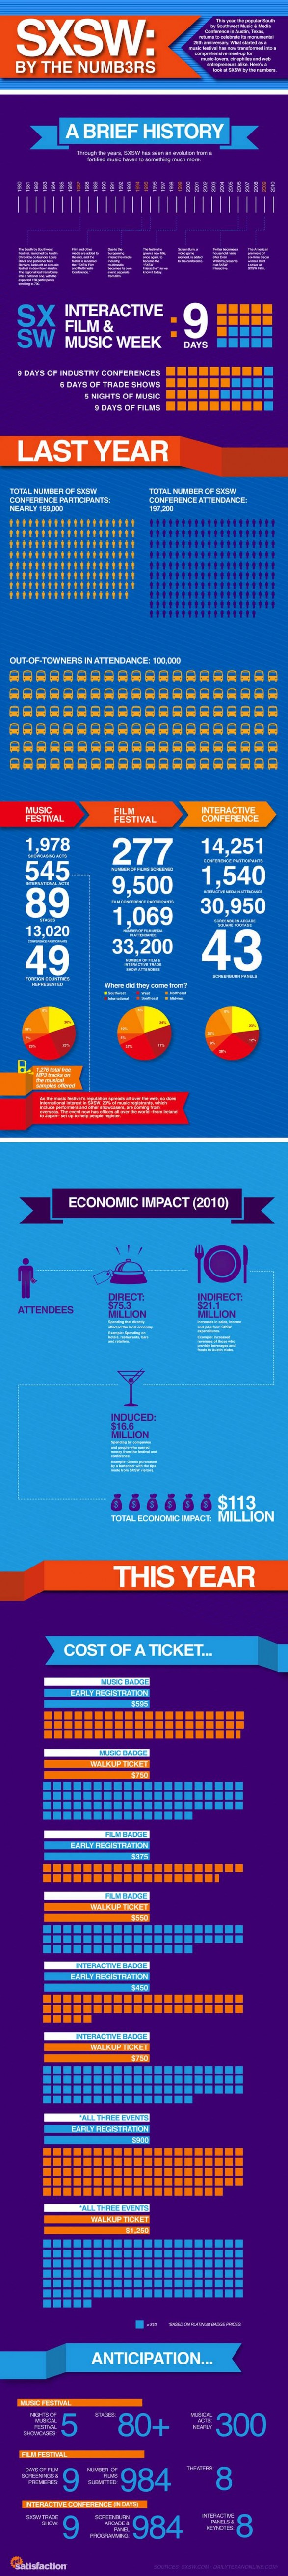 Economic Impact of a HUGE event!